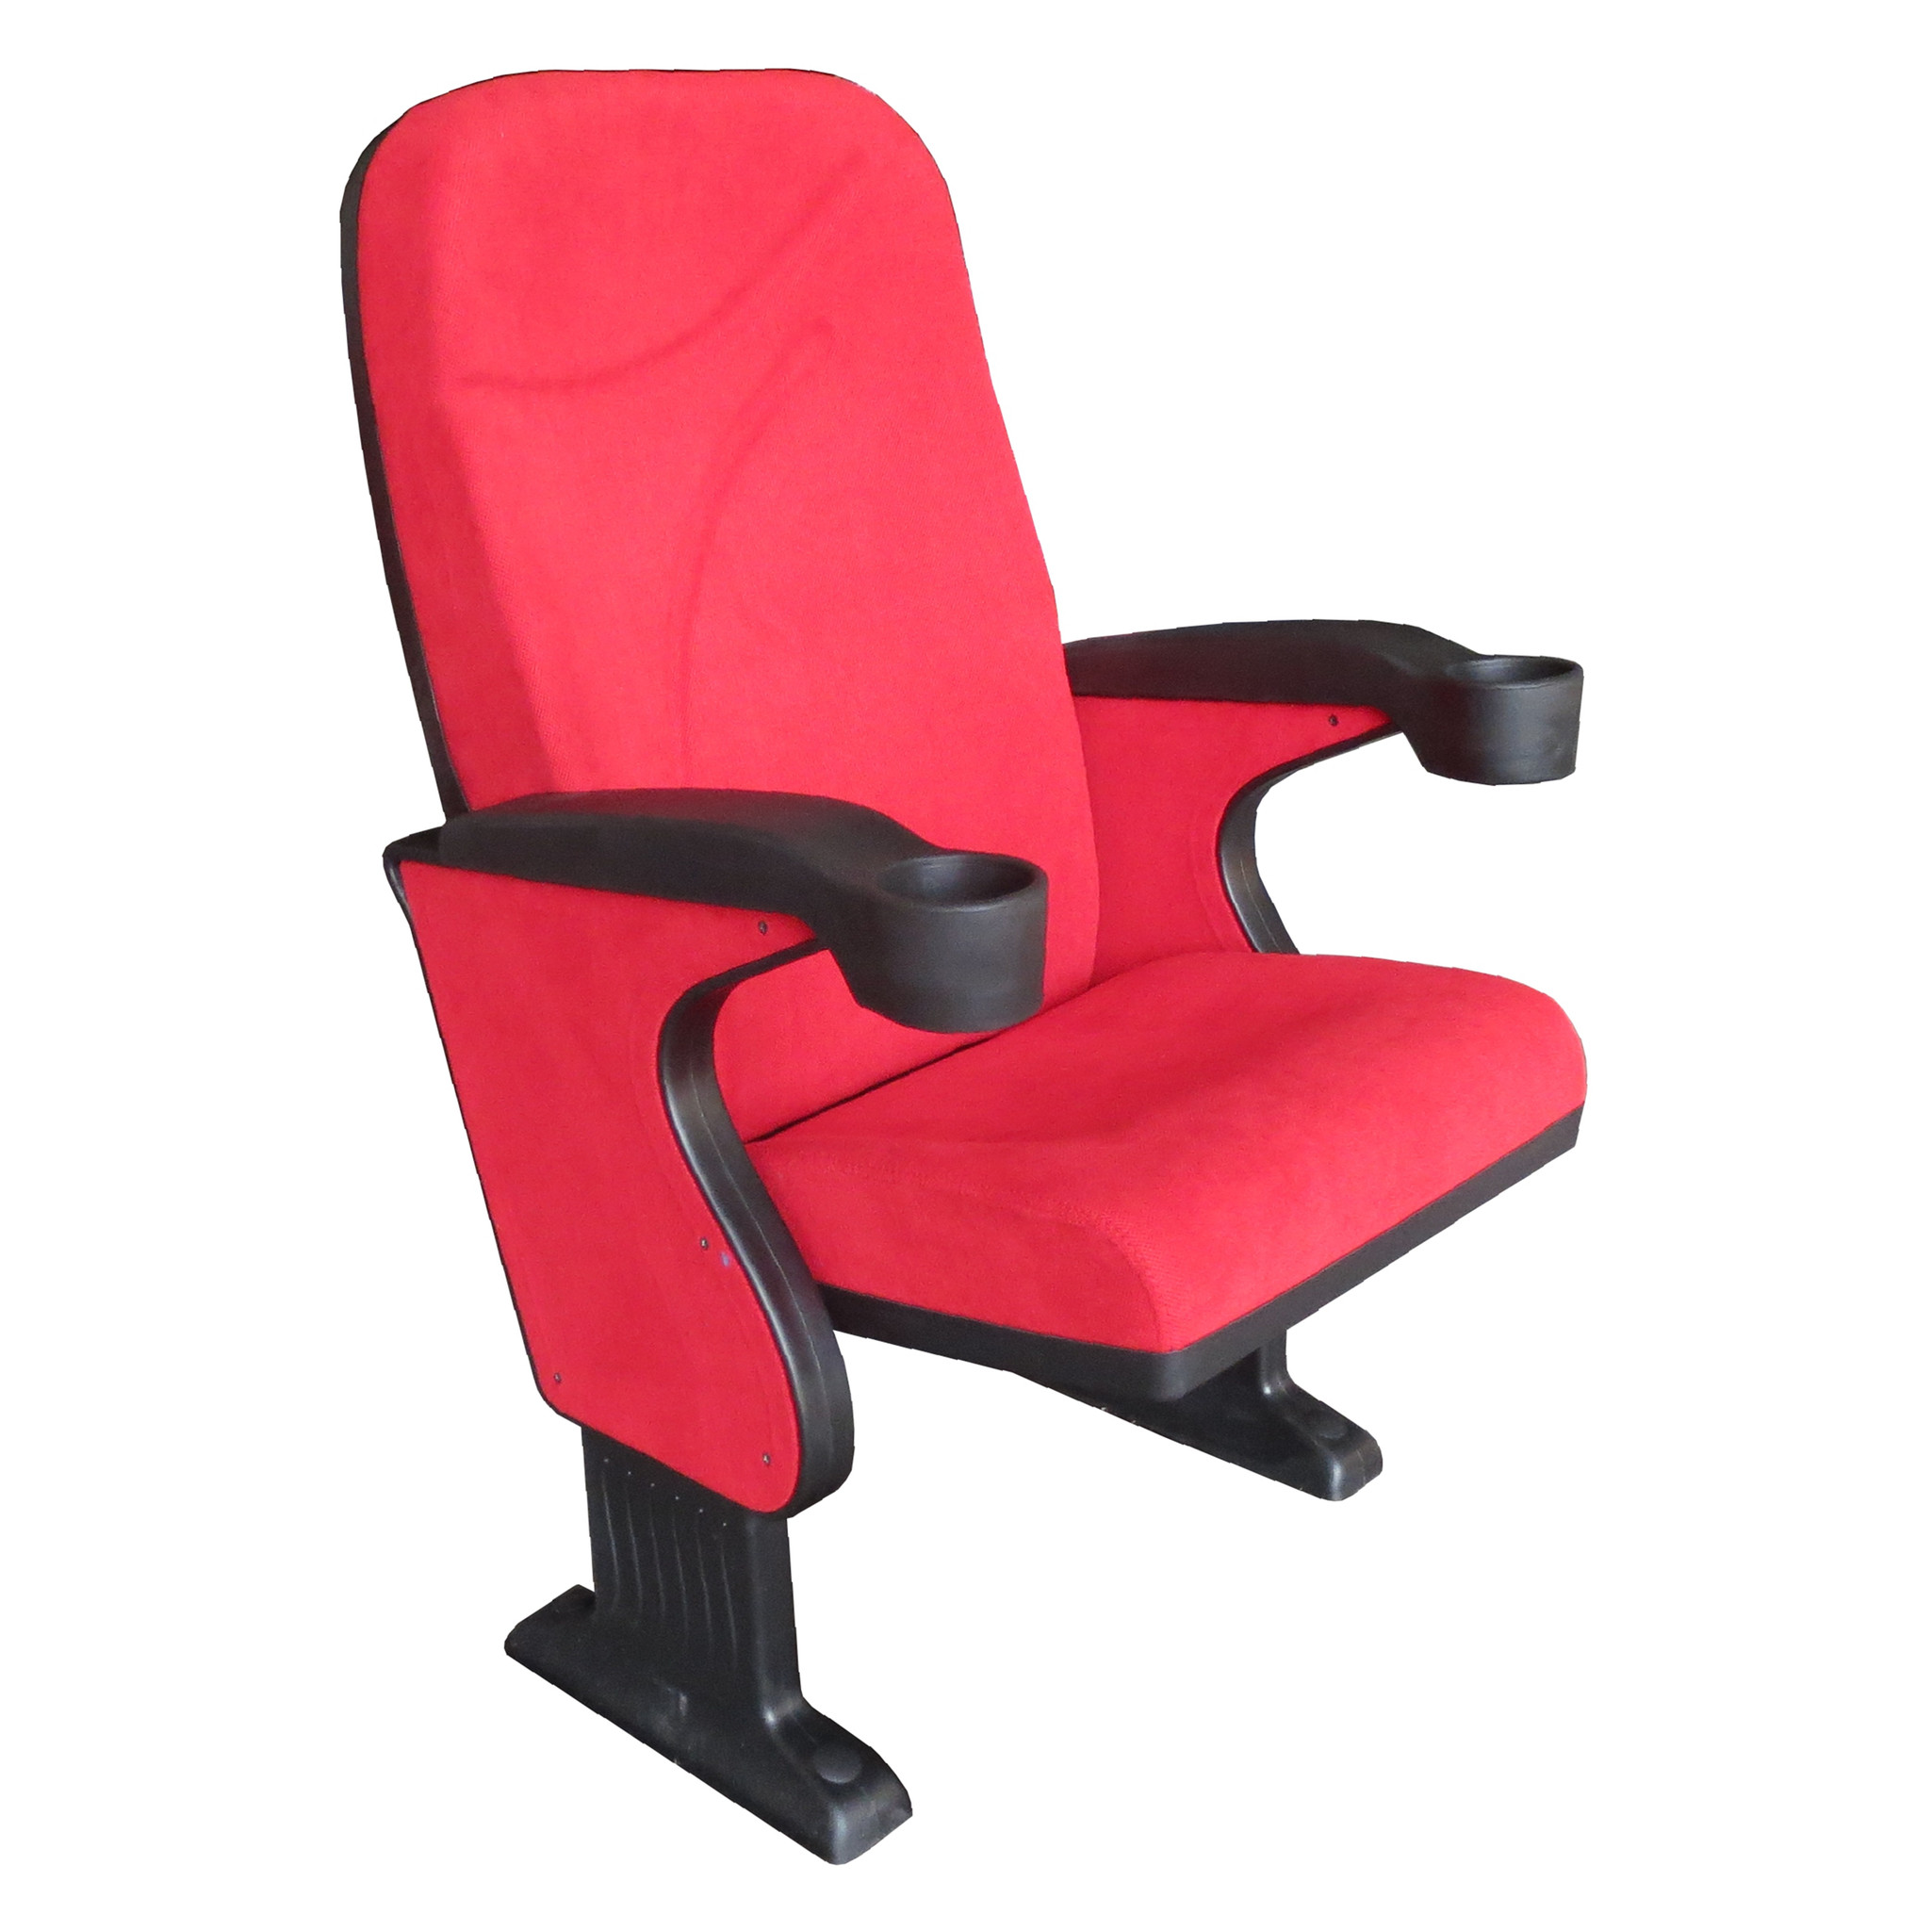 BOLTON S60 - Auditorium, Cinema, Movie Theatre Chair with Integrated Polyurethane Cup Holder- Turkey - Seatorium - Public Seating Manufacturer